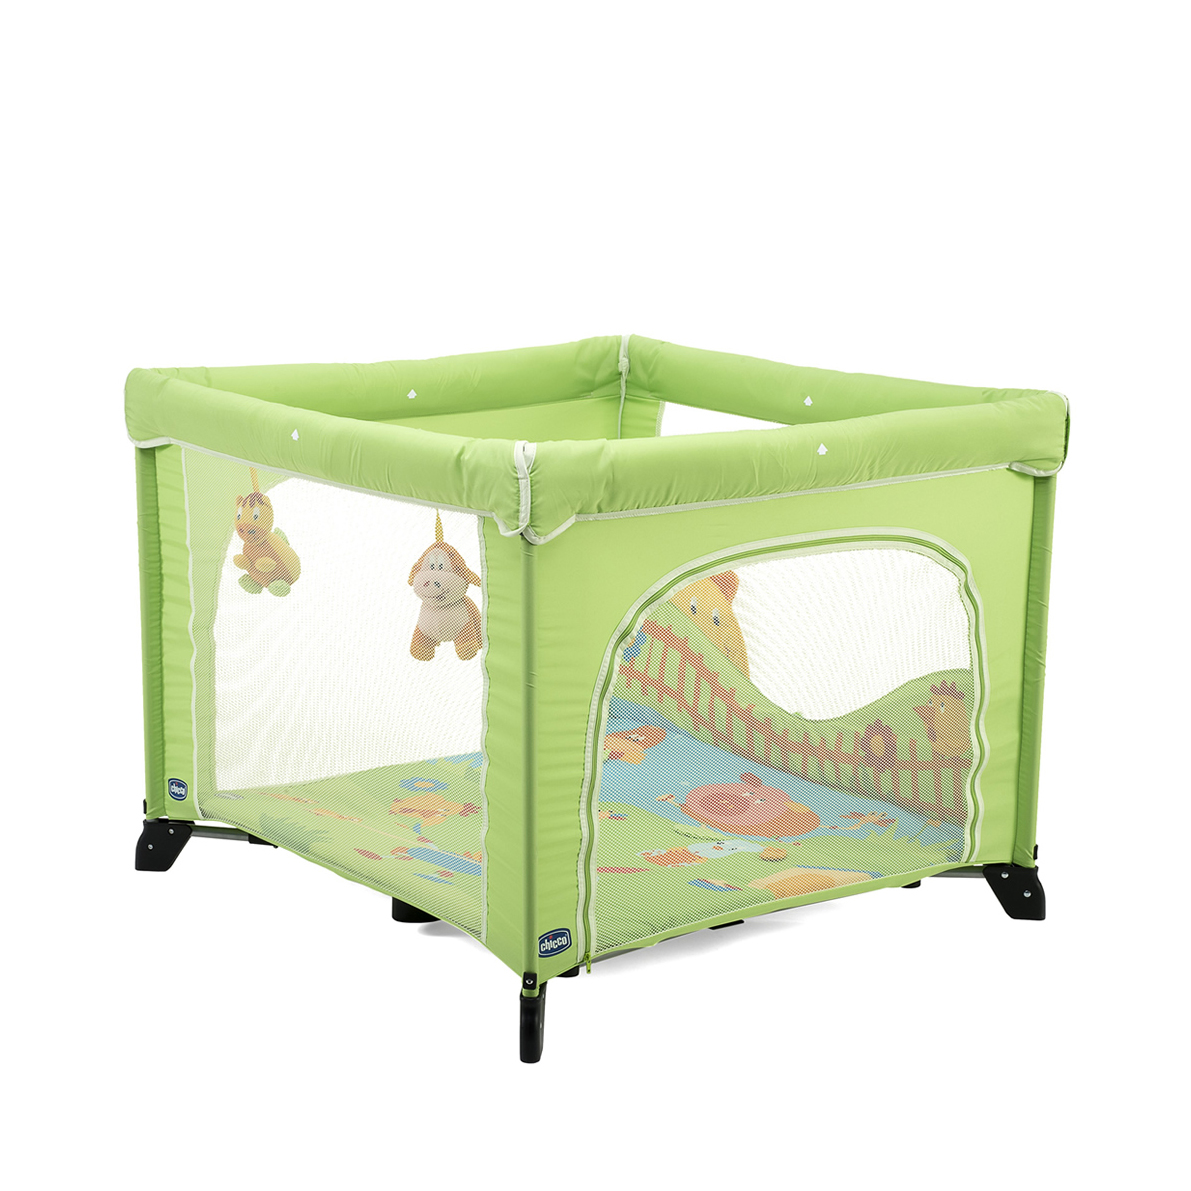 baby laufgitter kinder laufstall laufgitter chicco open country green ebay. Black Bedroom Furniture Sets. Home Design Ideas